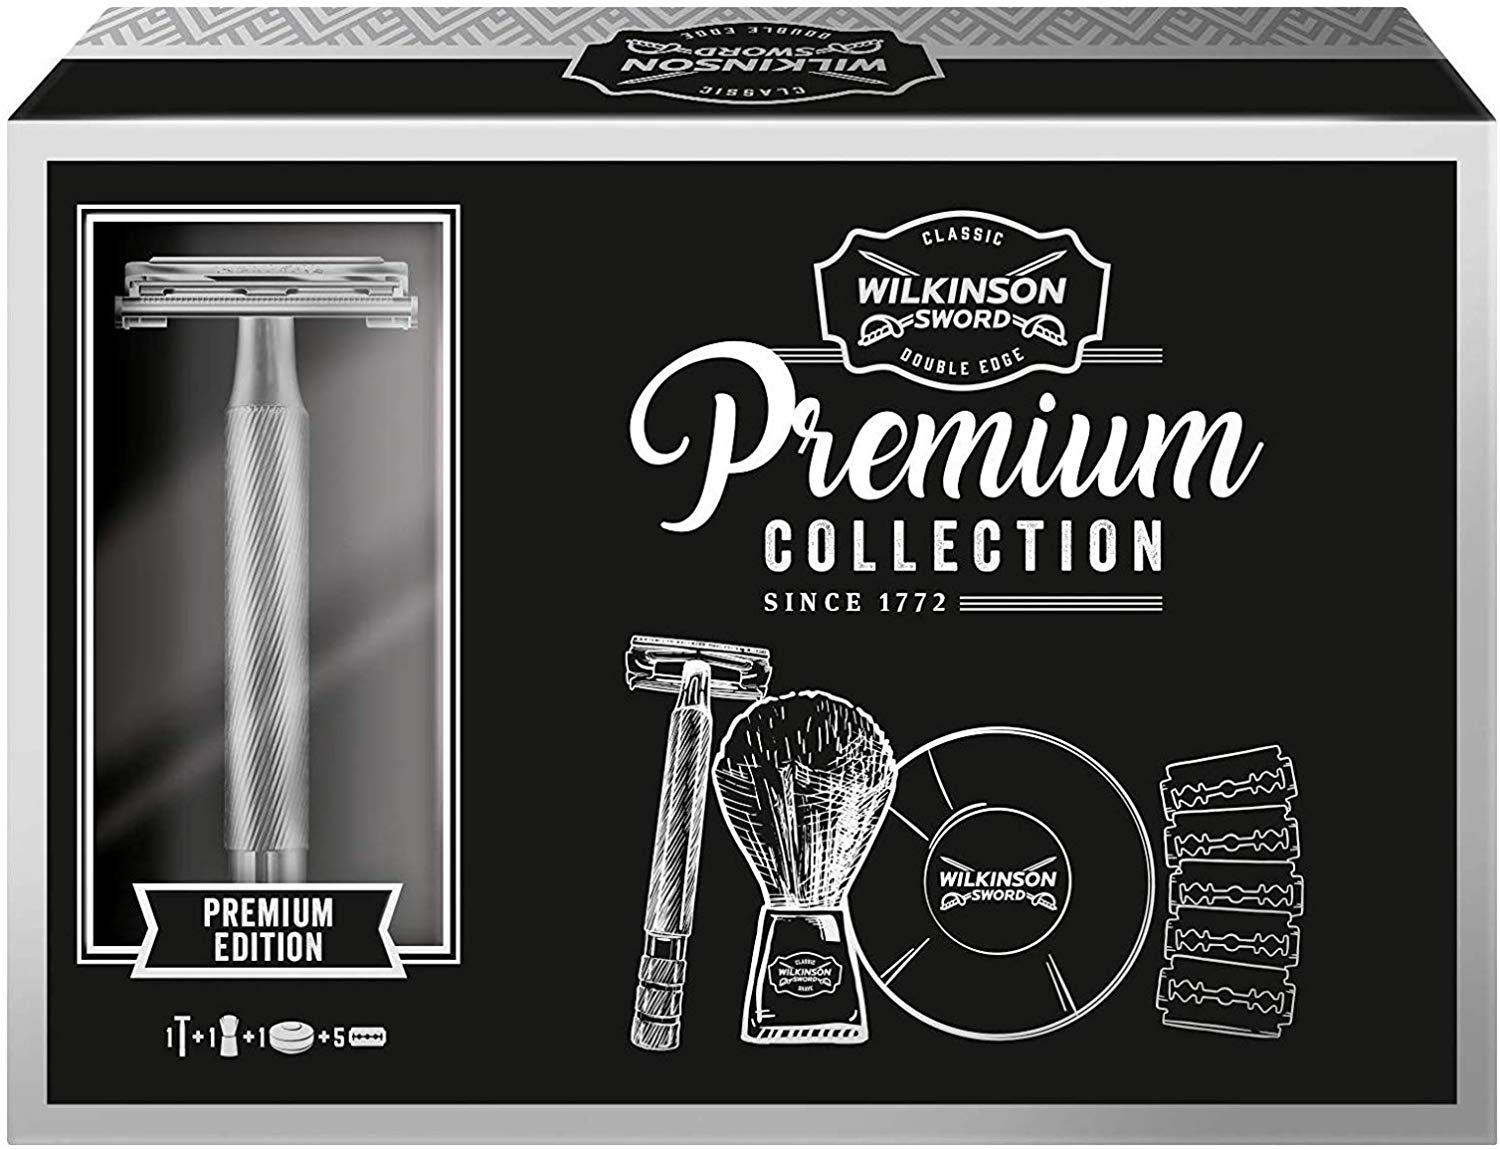 Up to 45% off Wilkinson Sword Classic Double Edge Safety Razor Gift Set